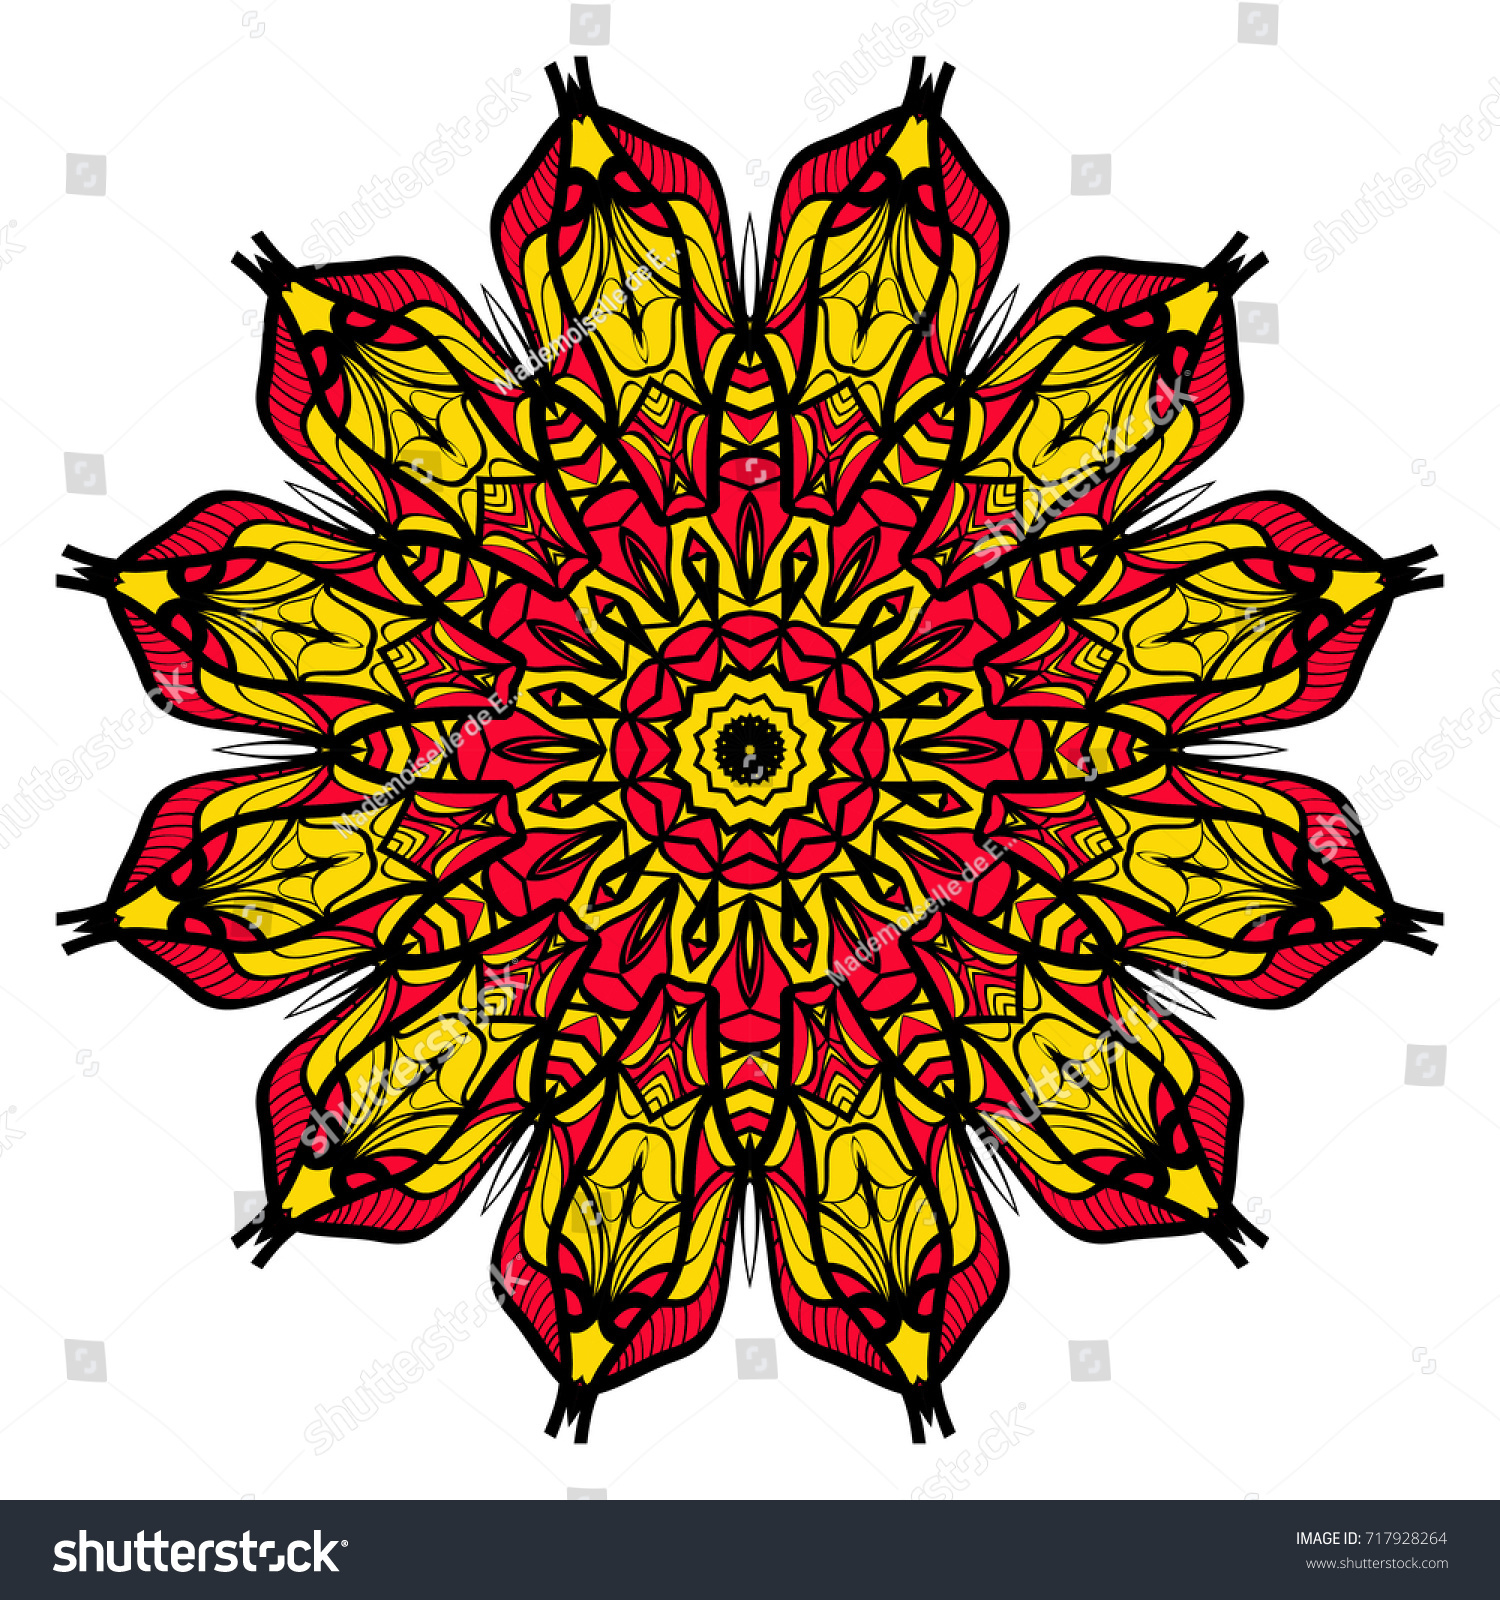 Yellow Red Black Color Flower Mandala Stock Vector 717928264 ...